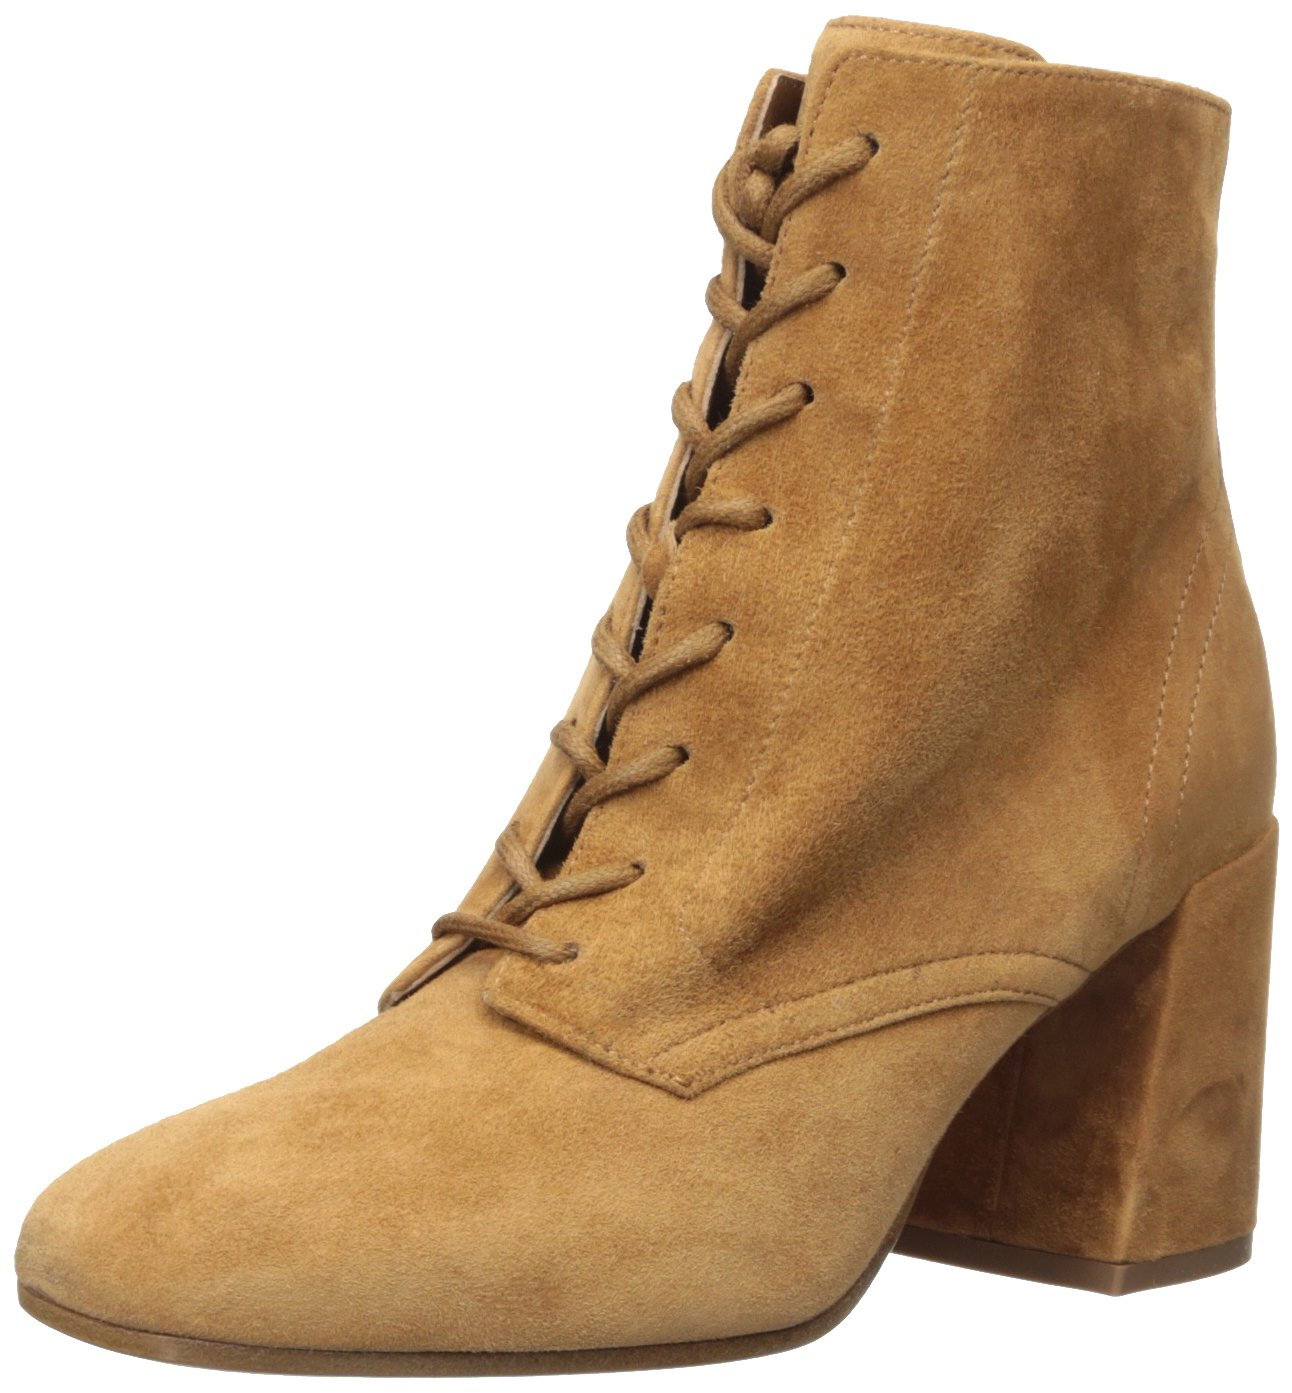 Vince Women's Halle Fashion Boot B071NTTLHK 9 B(M) US|Cedar